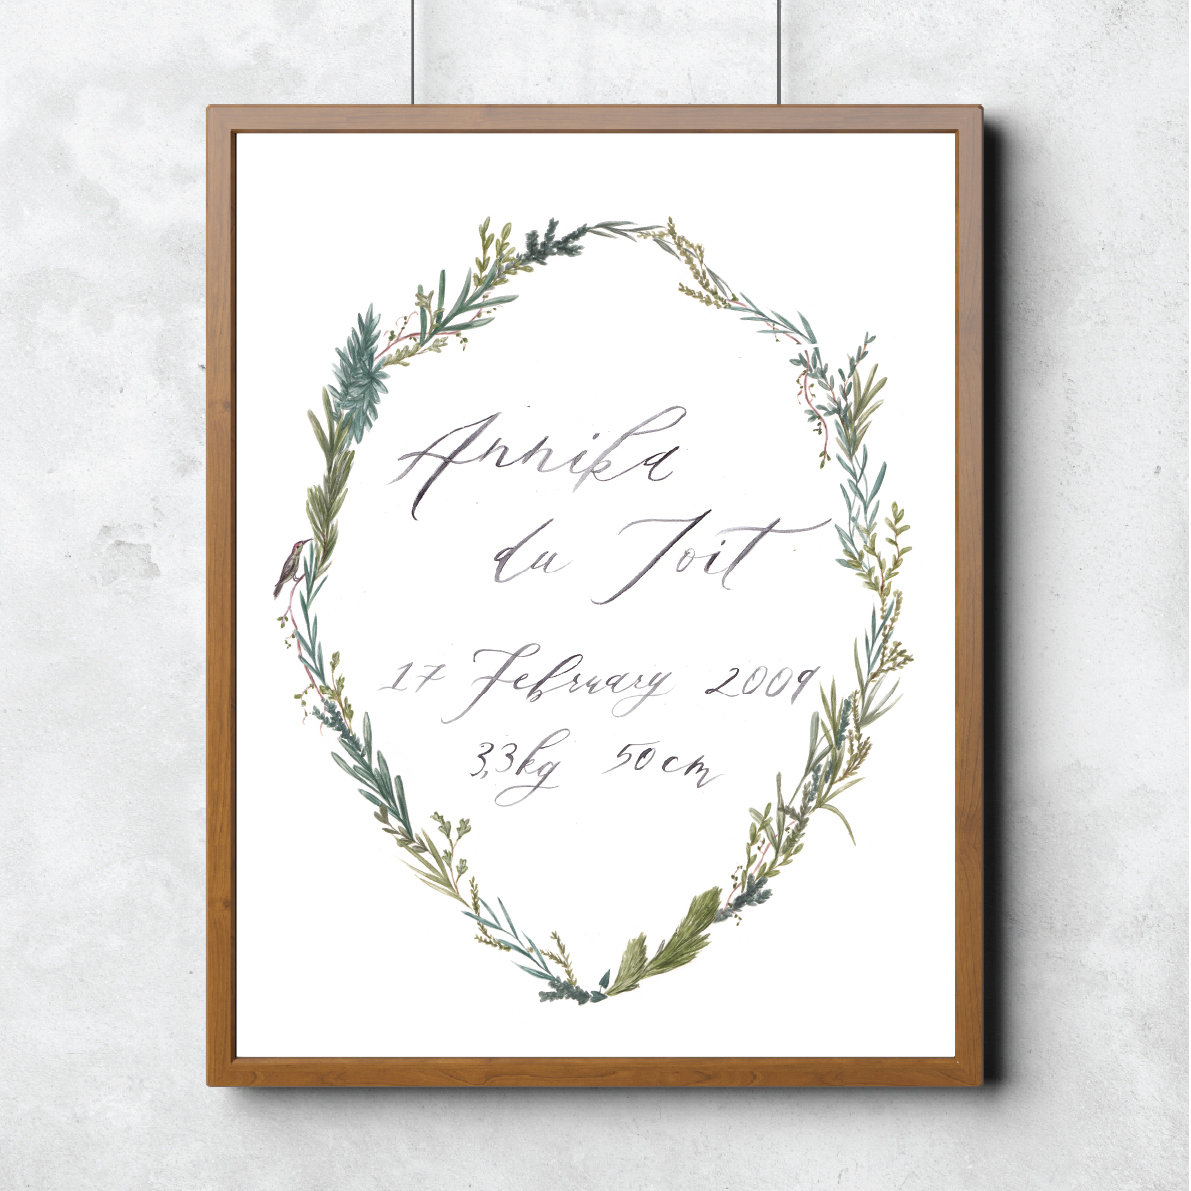 Custom Calligraphy Wreath Print